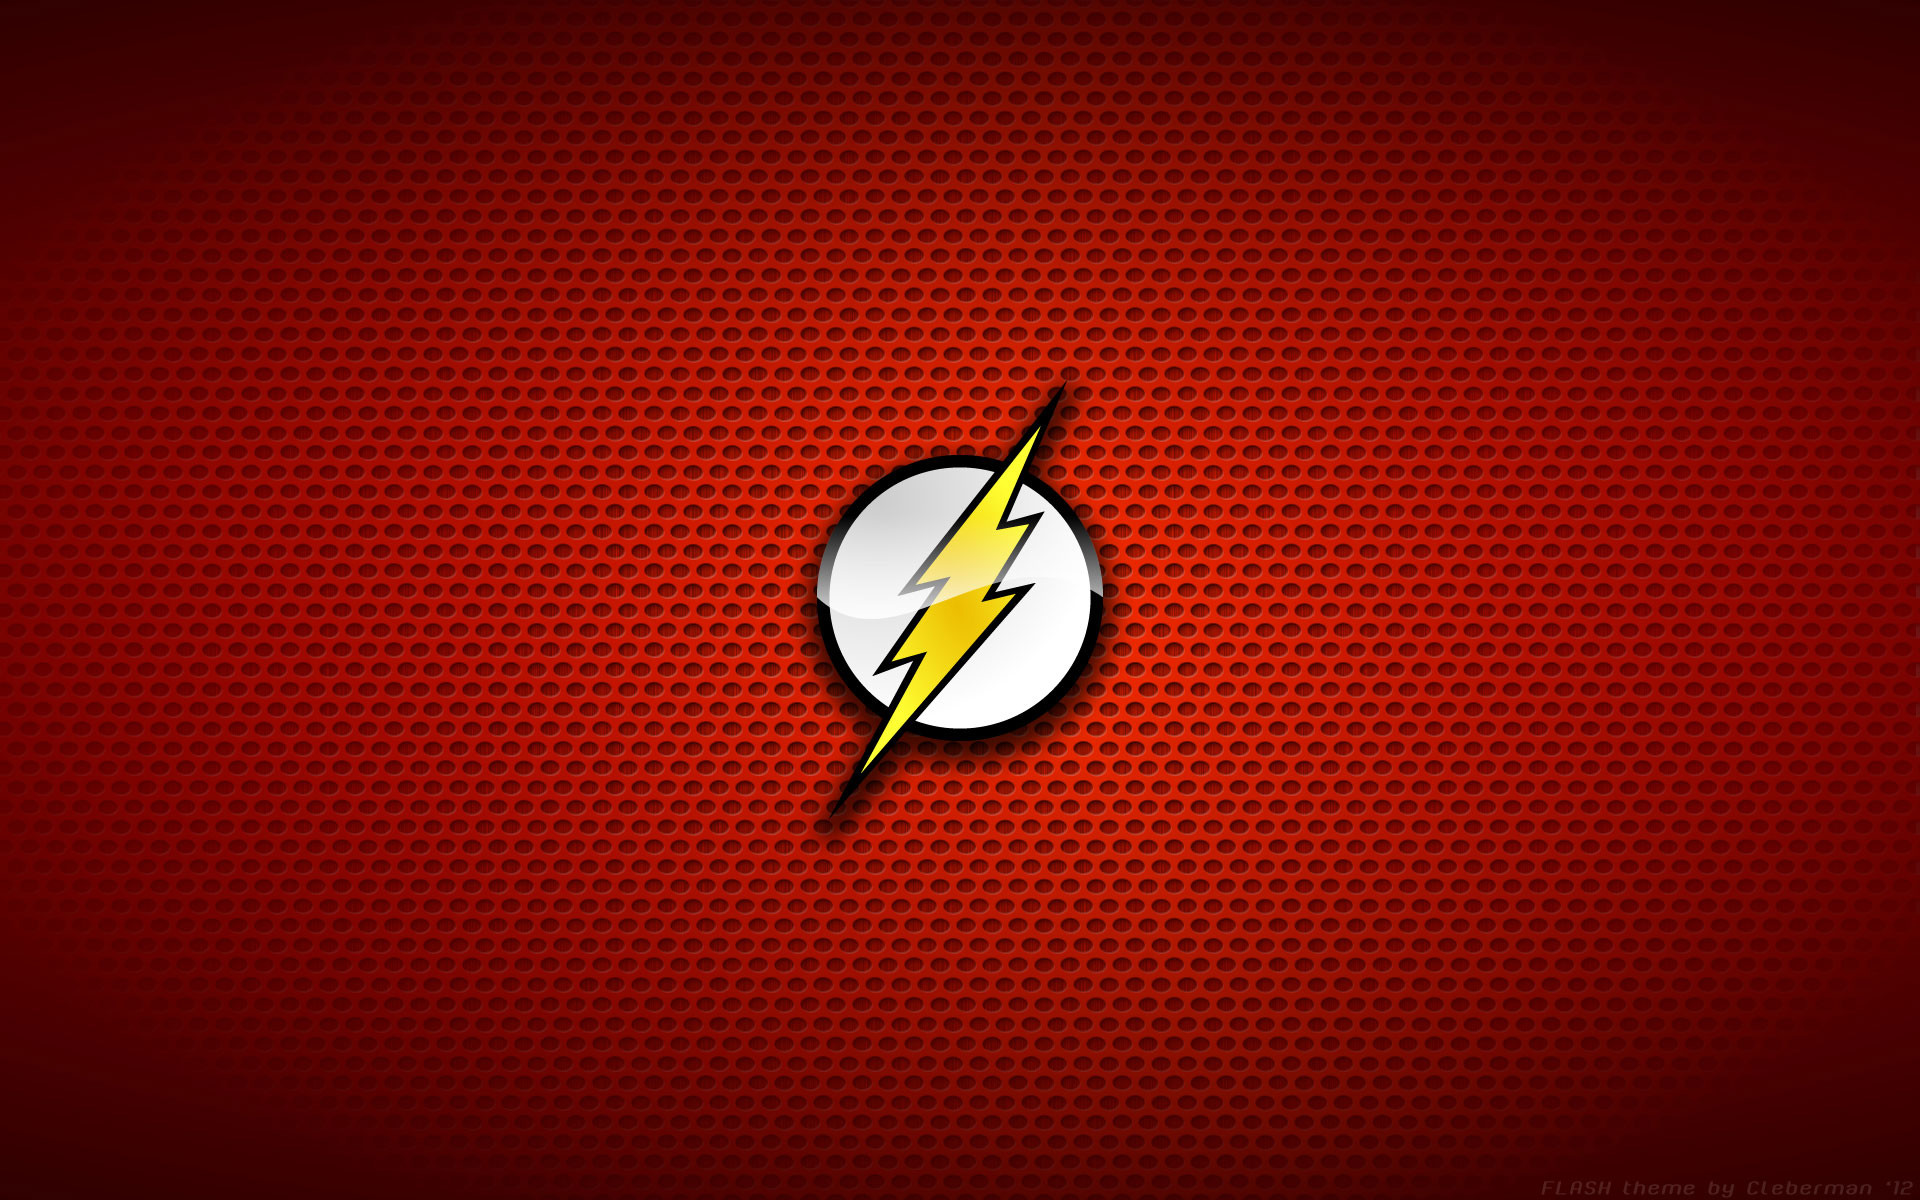 WB Reveals First Image of The Flash! – Rogue Planet